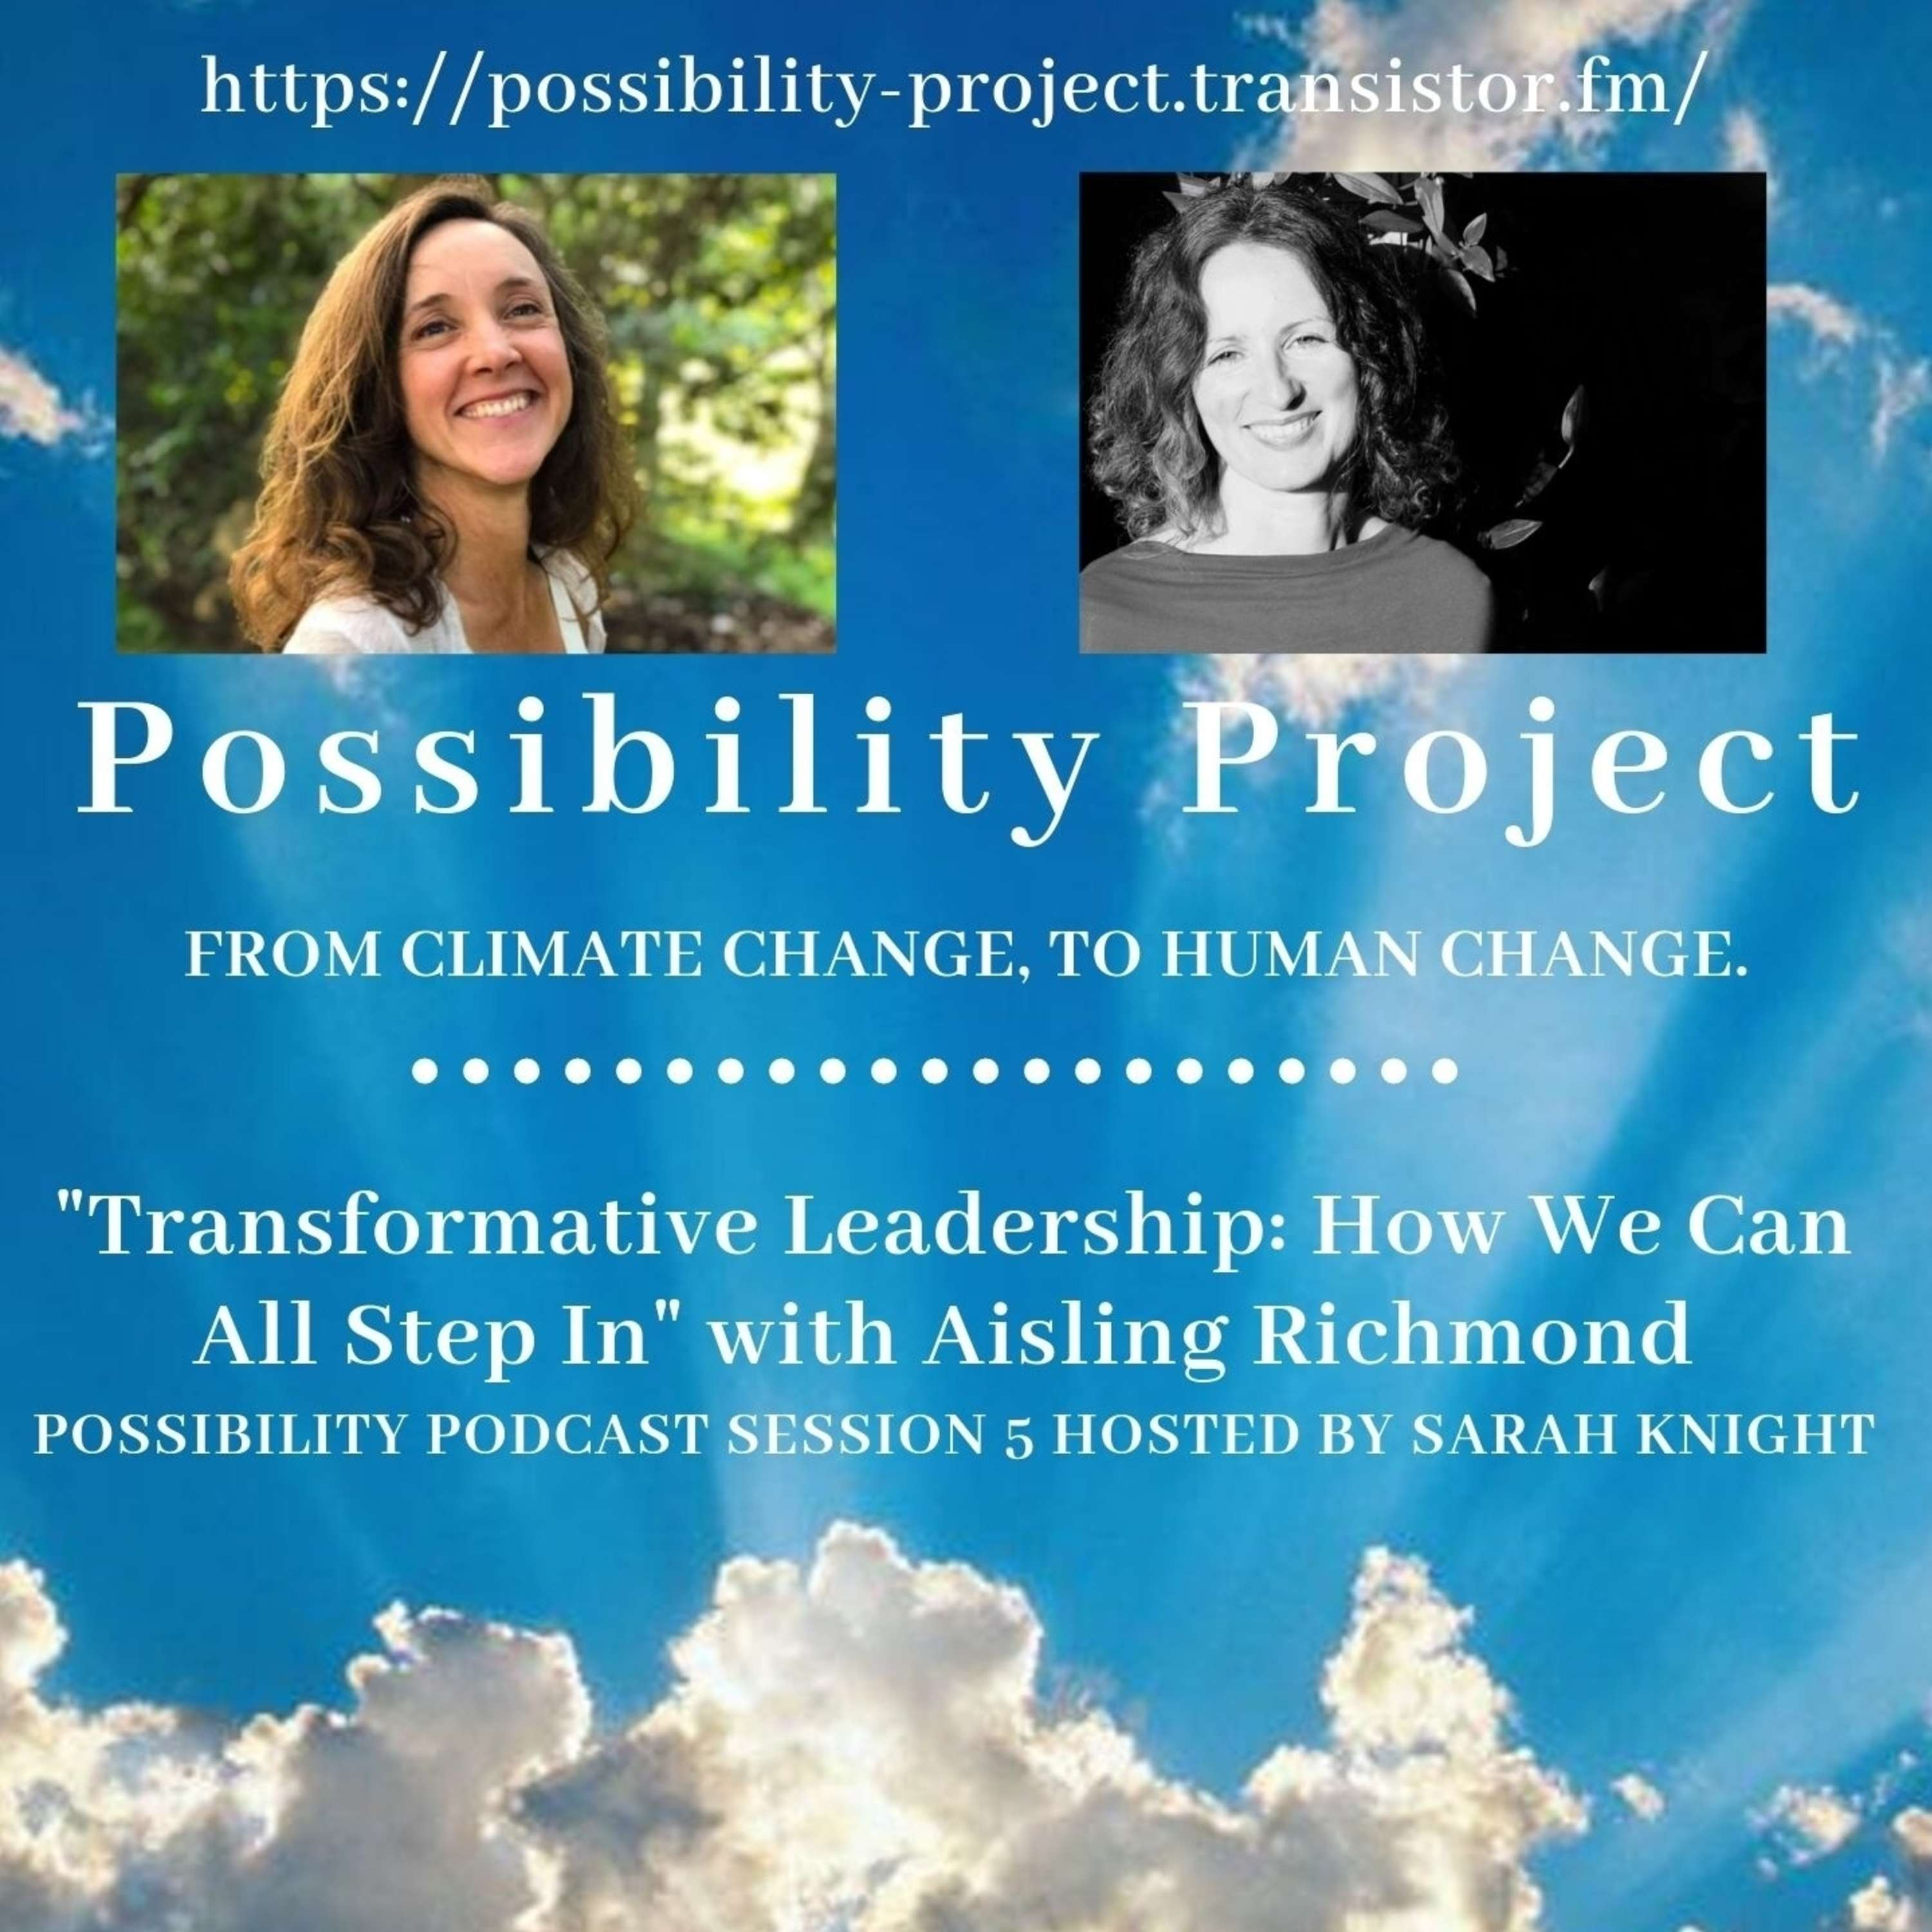 Transformative Leadership: How We Can All Step In. Possibility Podcast Session 5